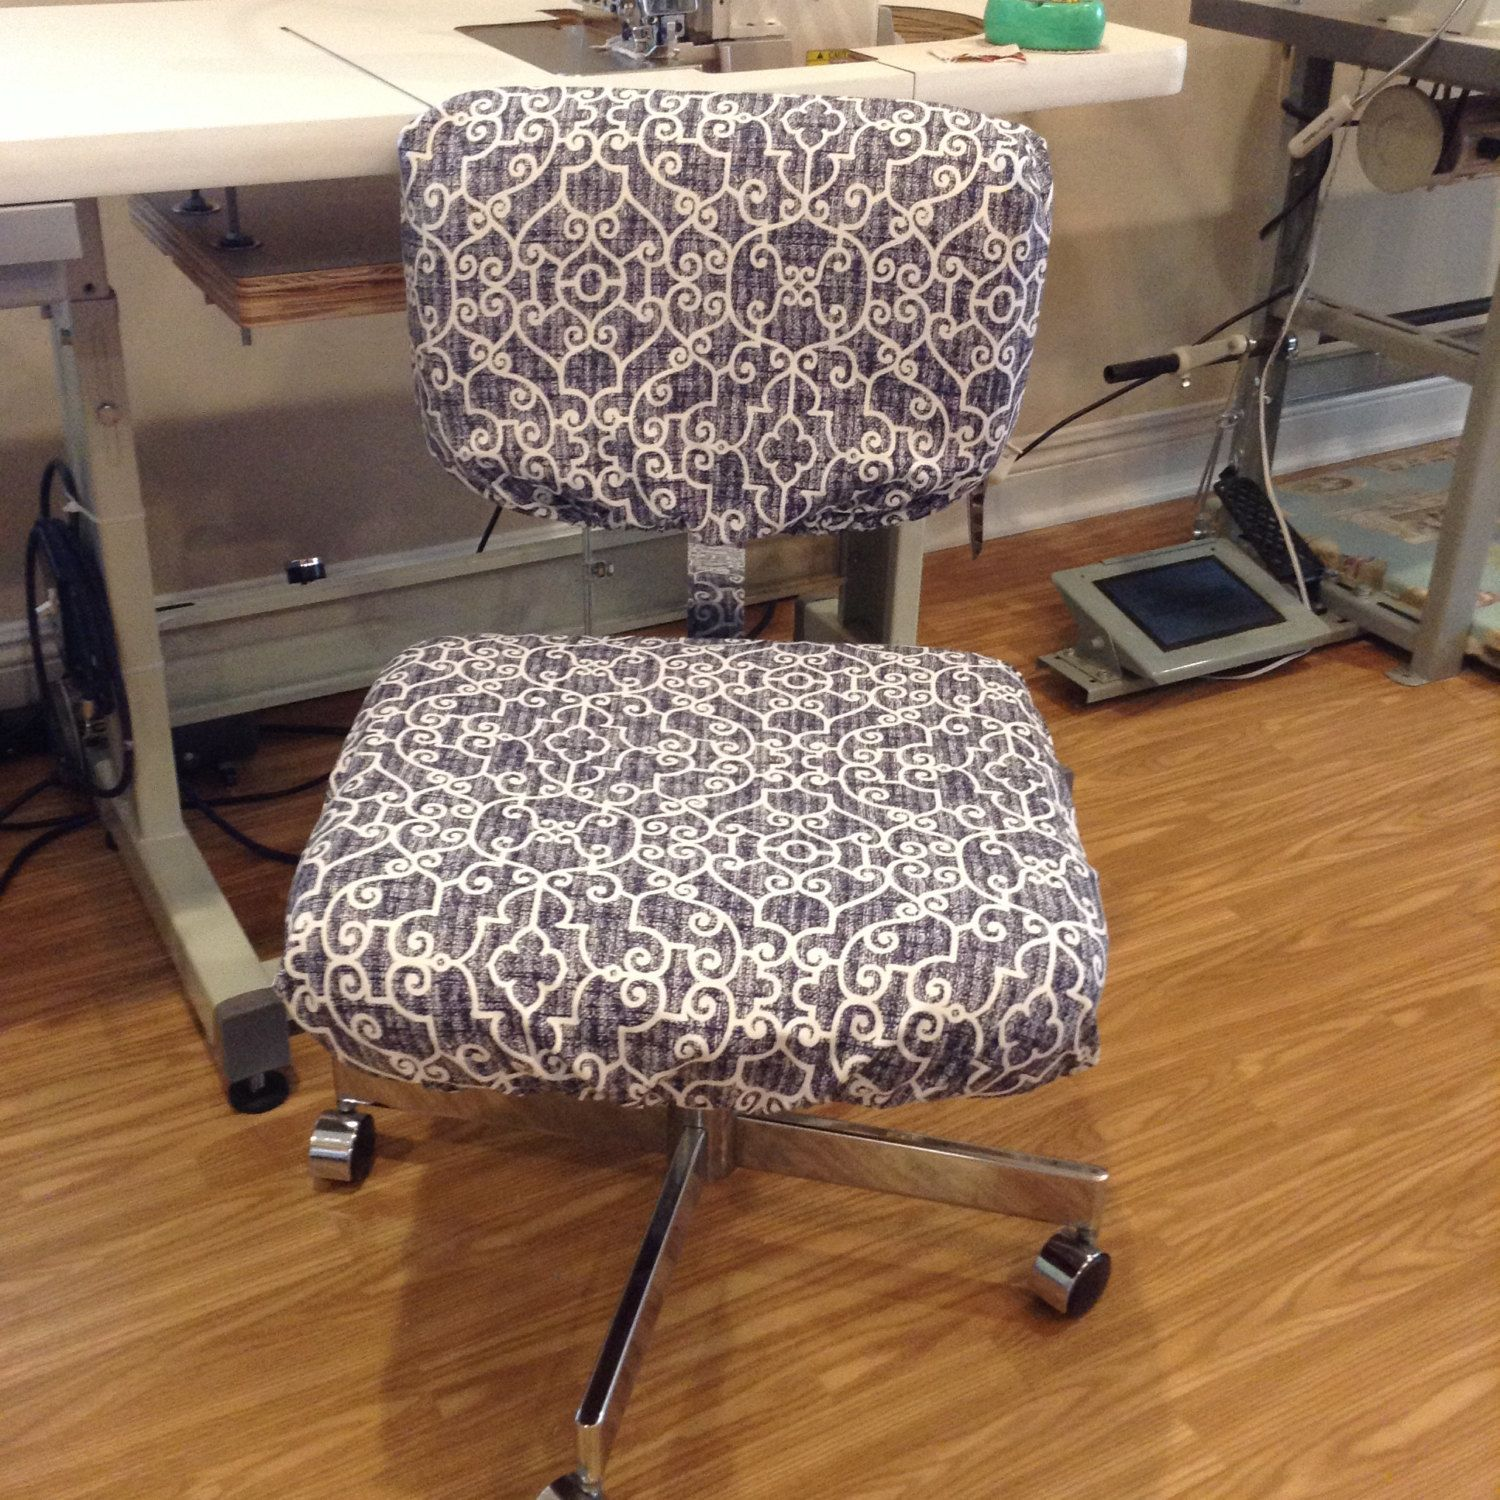 Office Chair Seat And Back Covers With Monogram Dorm Slipcover Elasticized Customizable Washable Removable